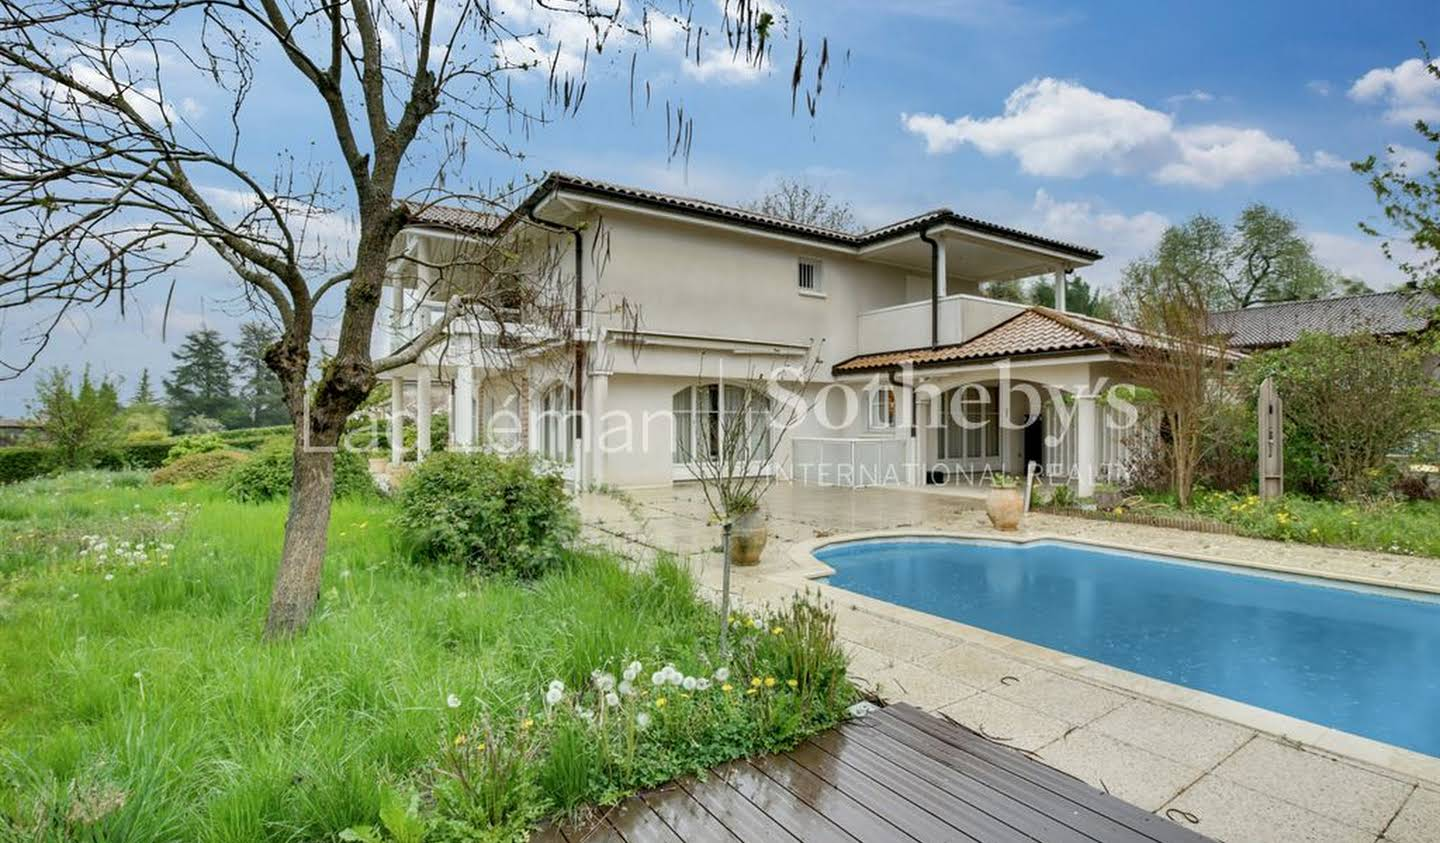 House with pool and terrace Messery